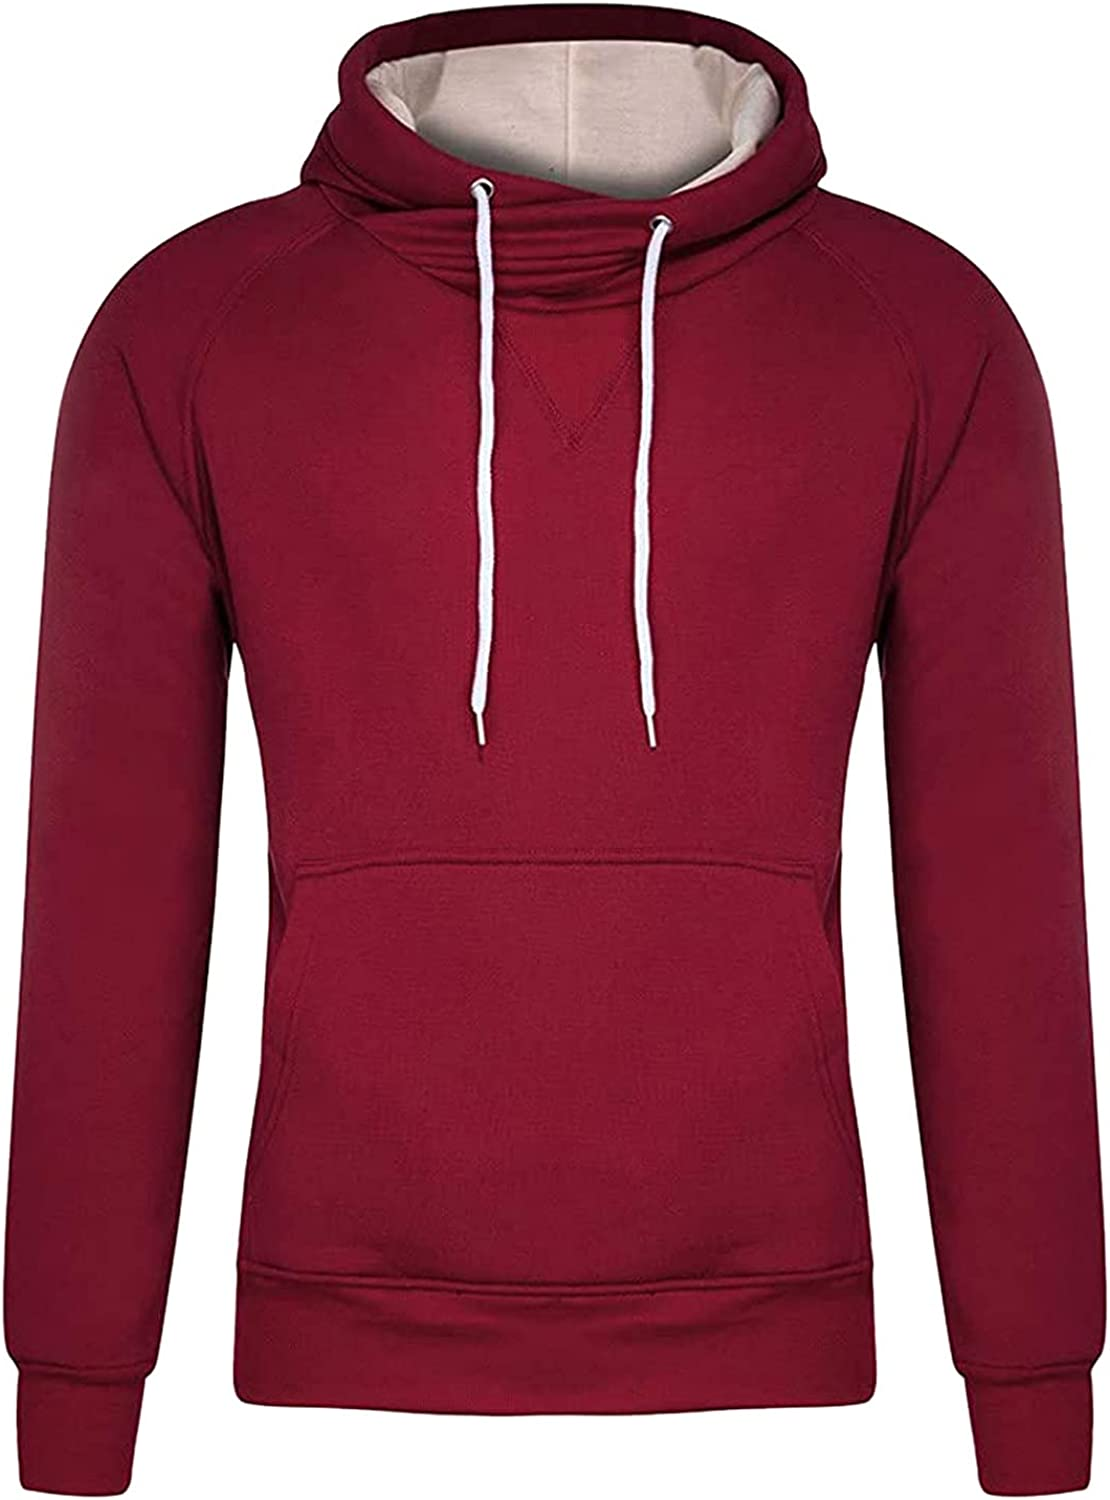 HONGJ Hoodies for Mens, Drawstring Cowl Neck Hooded Sweatshirts Color Block Patchwork Sports Workout Casual Pullover